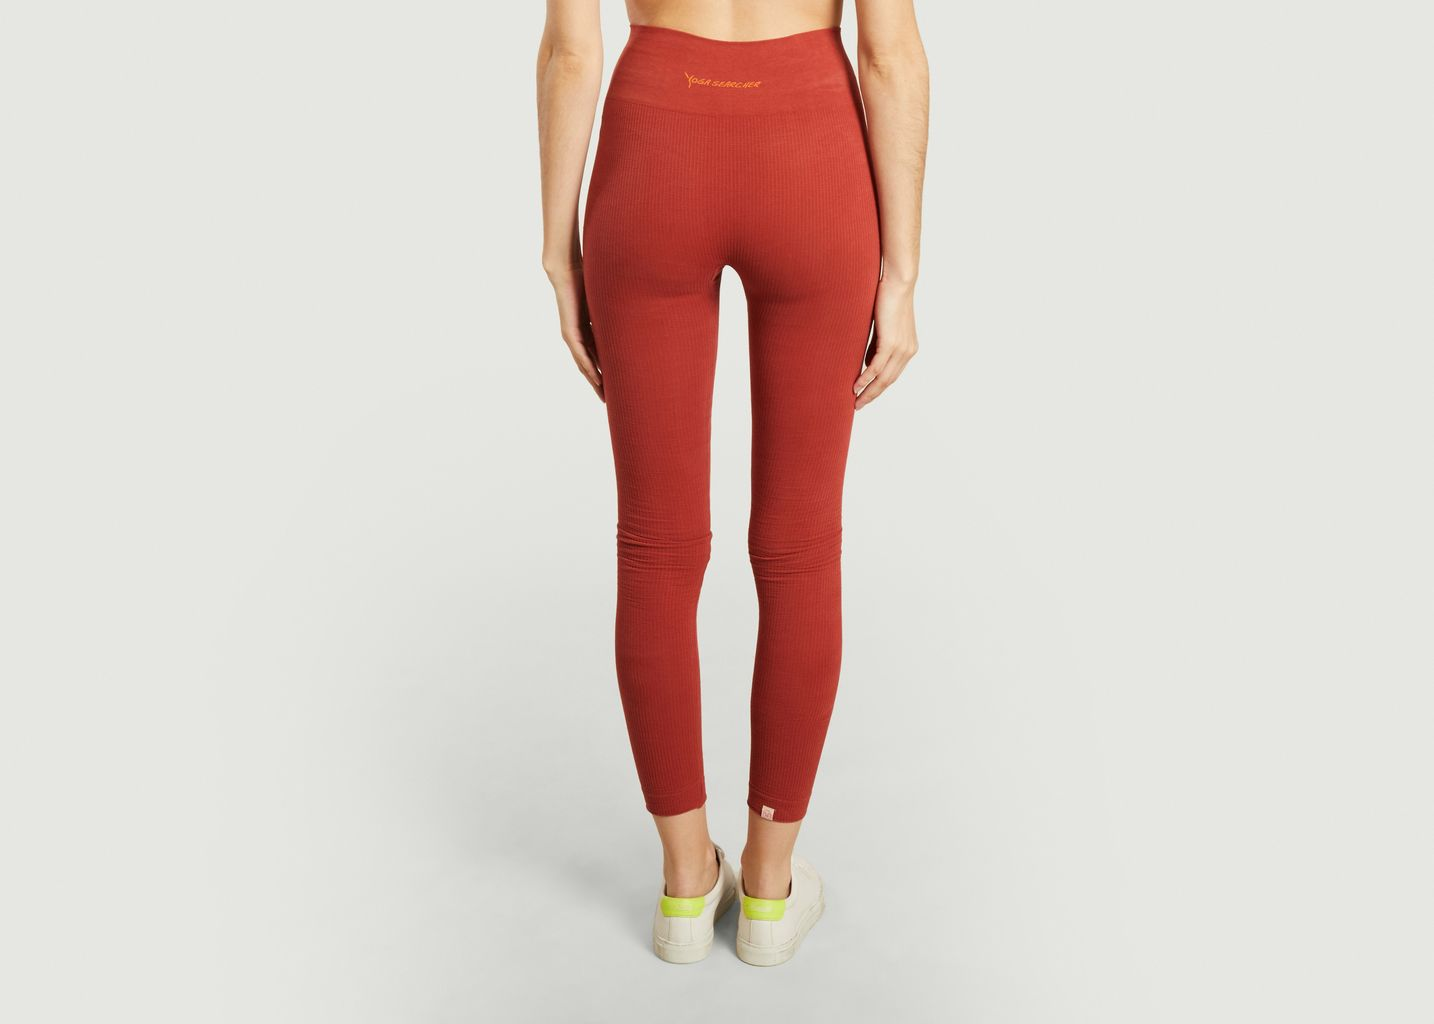 Legging de yoga maille nid d'abeille Savasana - Yoga searcher